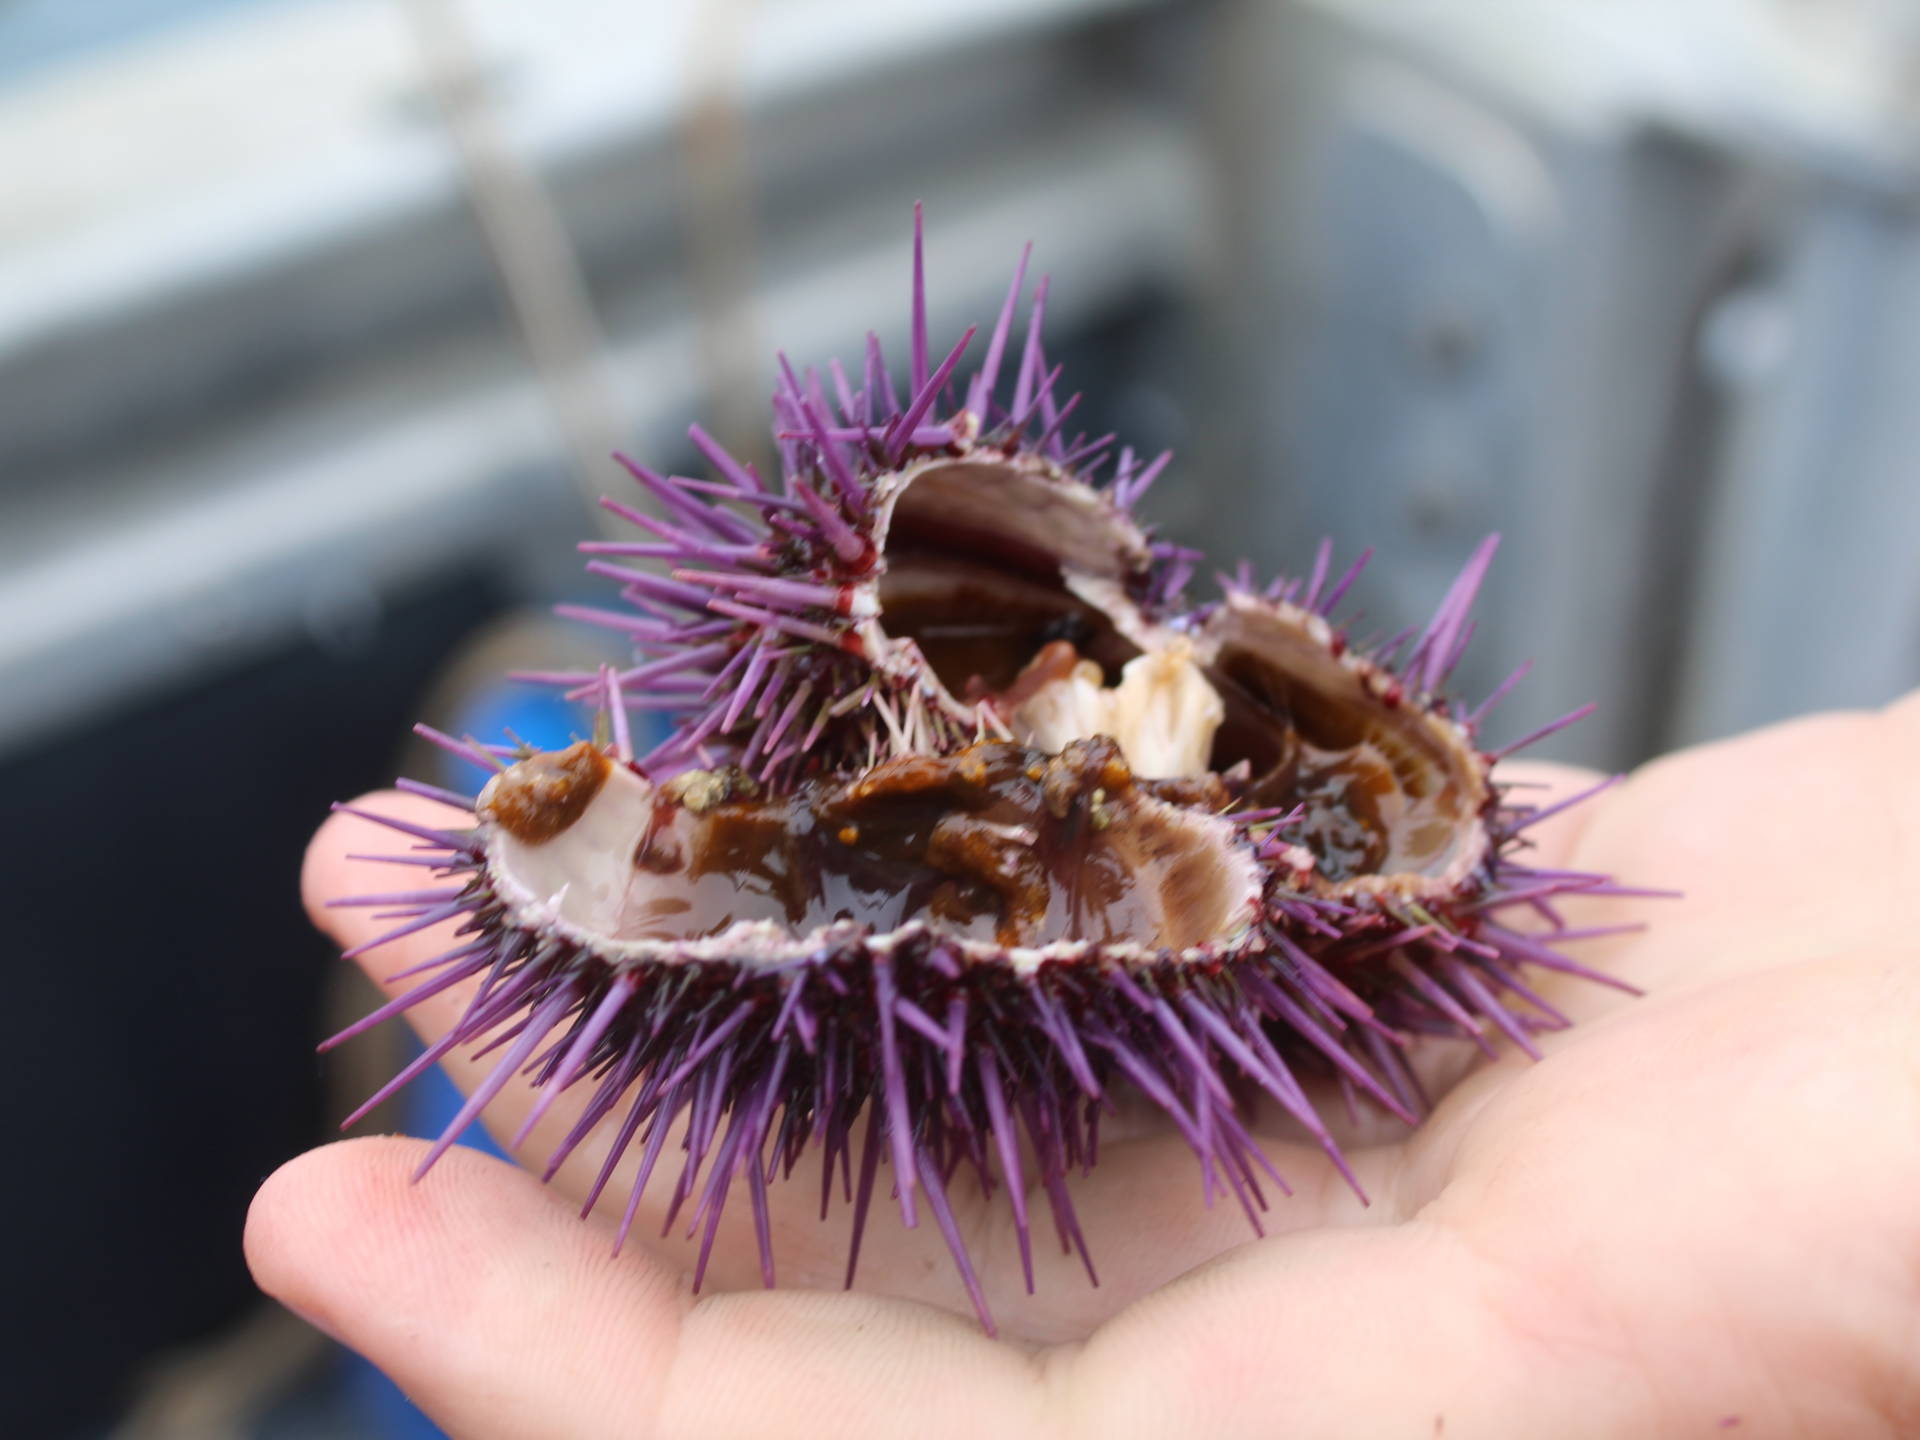 Saving California's Kelp Forest May Depend On Eating Purple Sea Urchins